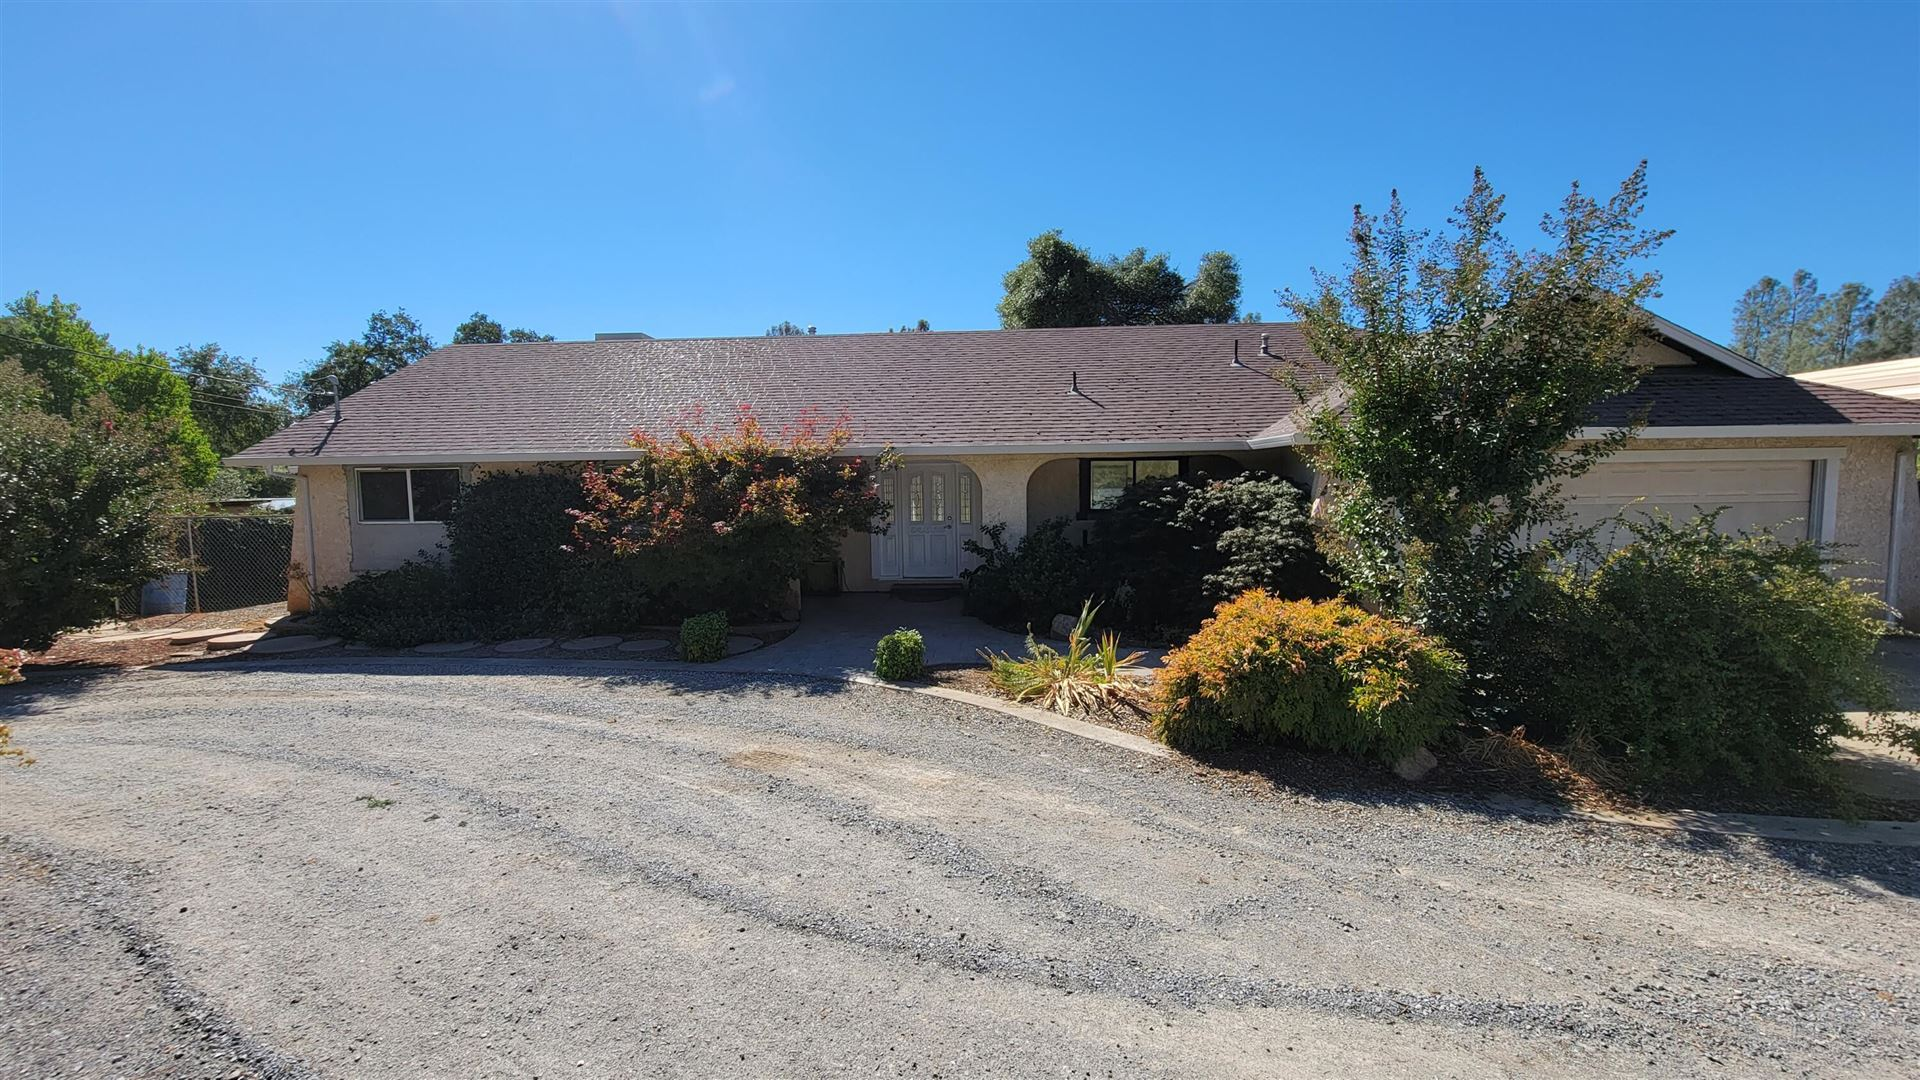 Photo of 7891 Placer Rd, Redding, CA 96001 (MLS # 21-4743)